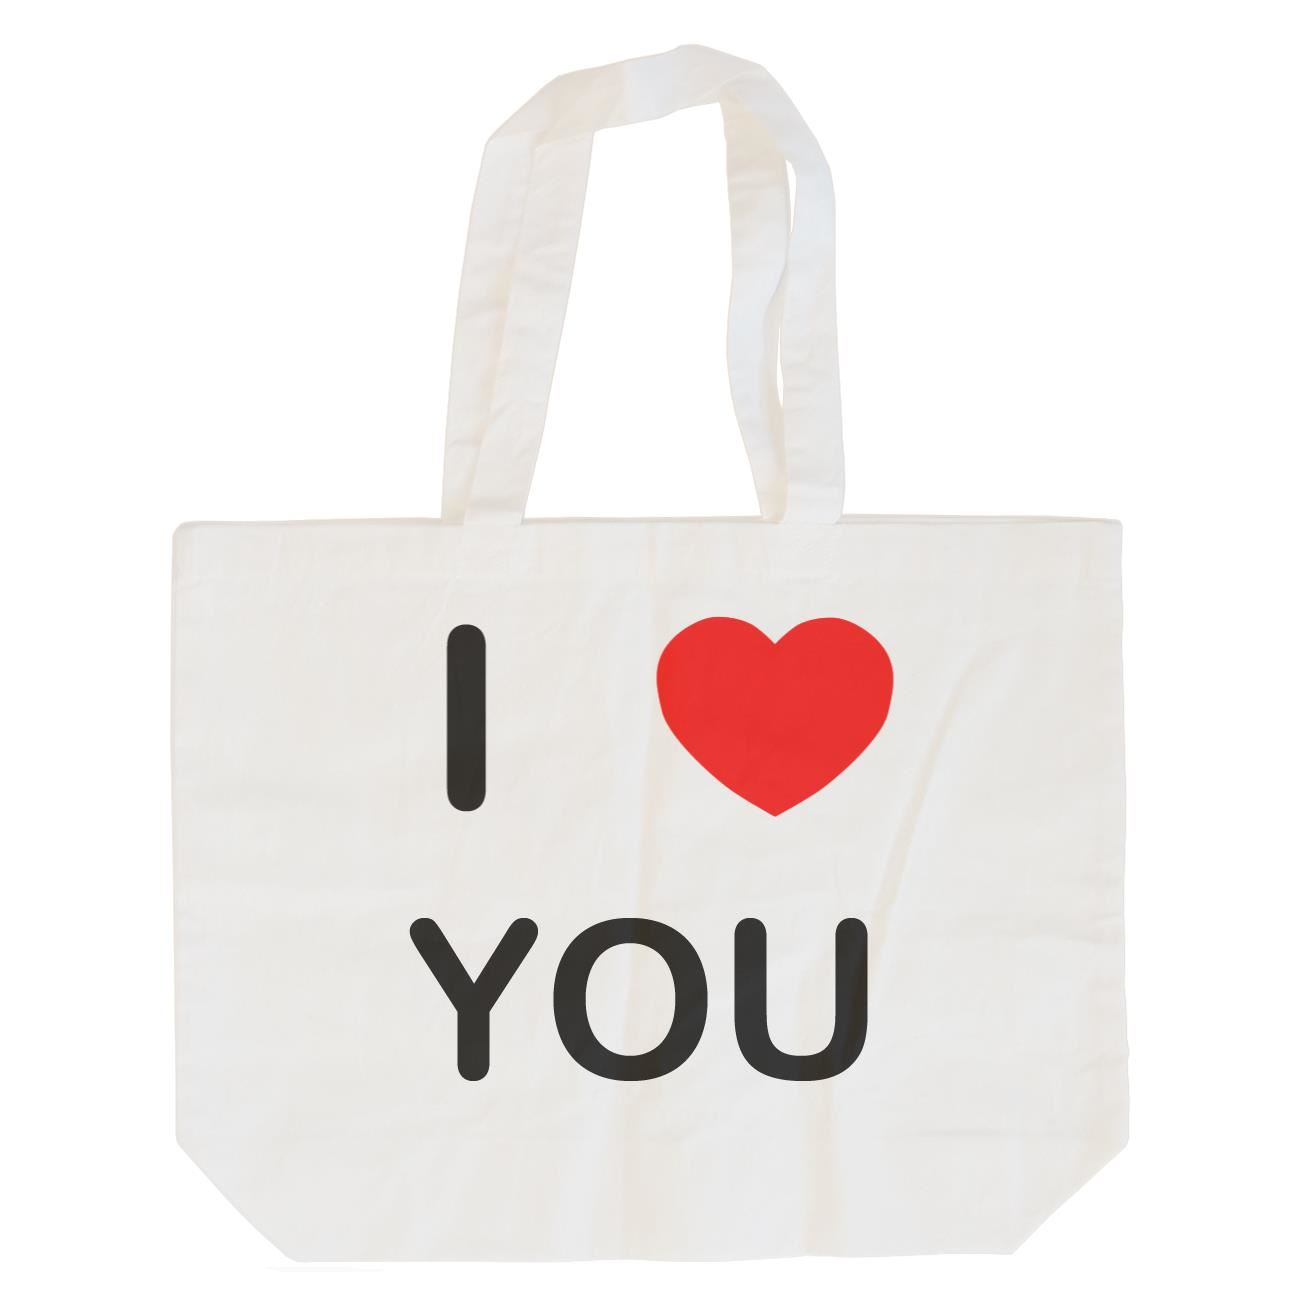 I Love You - Cotton Bag | Size choice Tote, Shopper or Sling